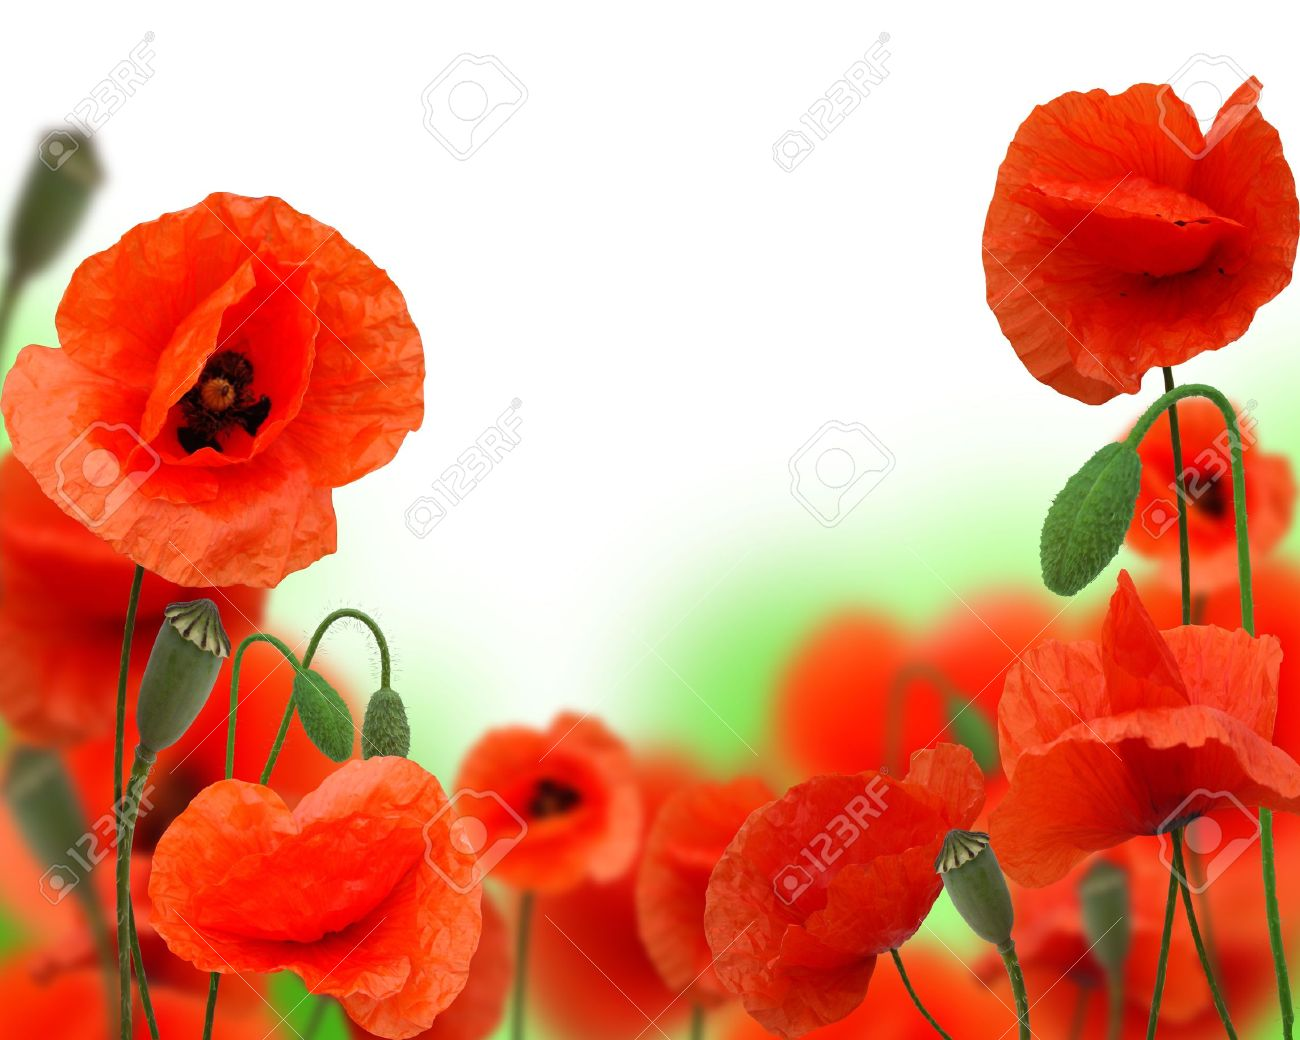 Poppy flower field at night royalty free stock photography image - Depth Field Beautiful Red Poppy